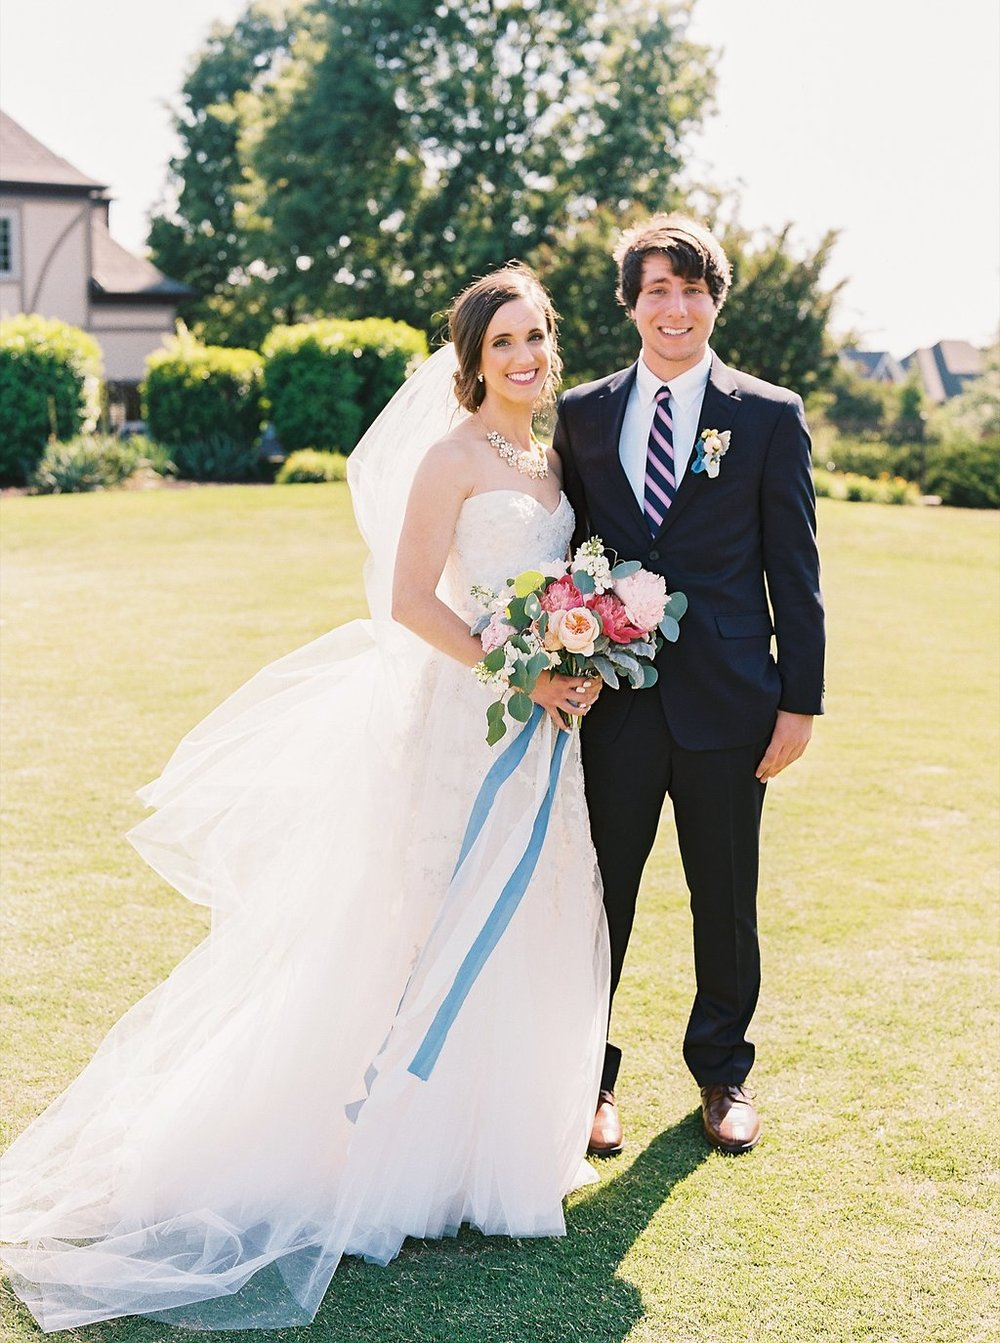 Sweet Bride and Brother of the Bride Moment | Blush and Navy Wedding with Fuchsia, French Blue and Gold Accents | Simply Jessica Marie's Southern Wedding | Photo by Perry Vaile Photography